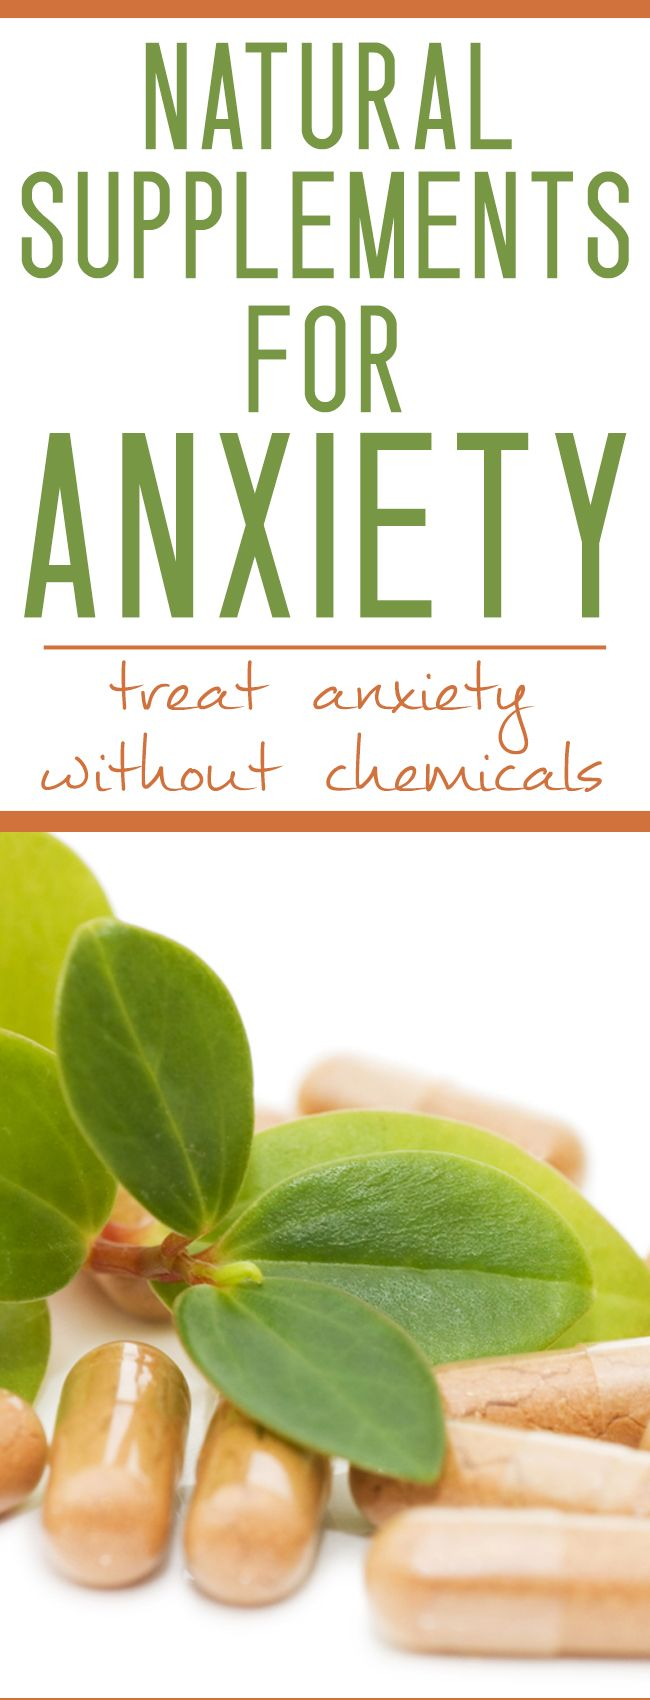 natural supplements for anxiety | best pins | pinterest | natural